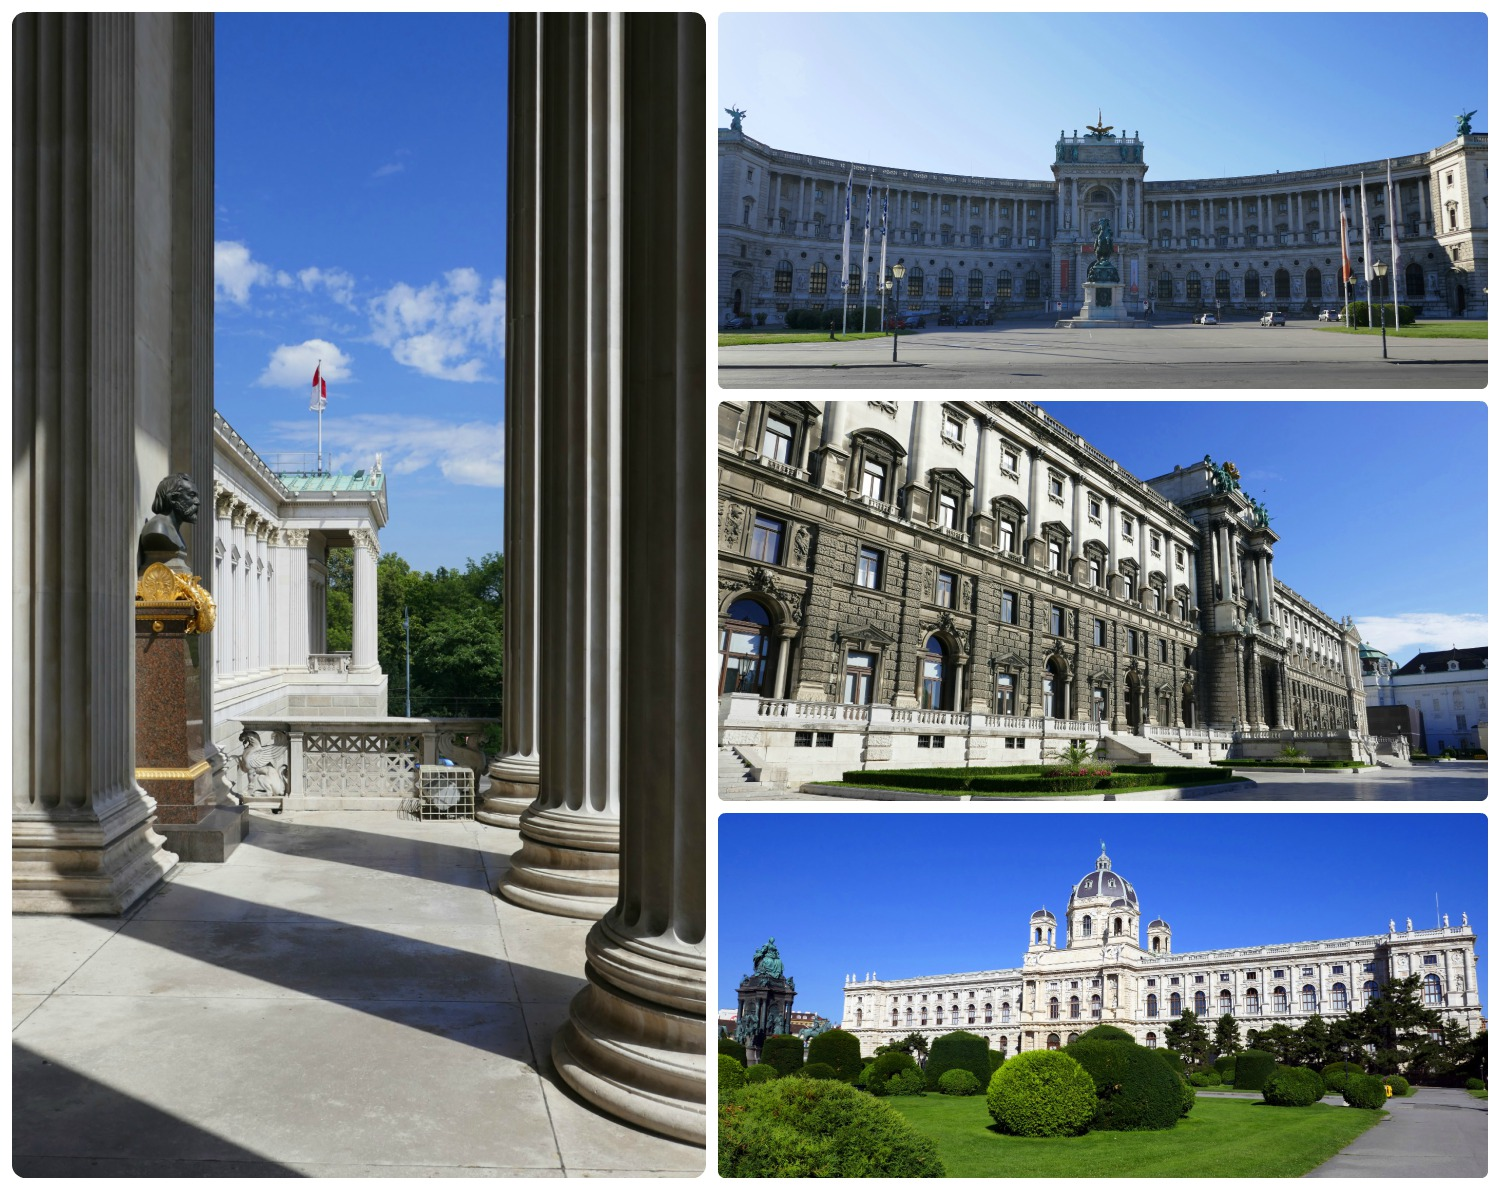 The buildings that line Ringstrasse are impressive! Clockwise (from the left): Parliament as seen from the top of the steps, the front of Neue Burg Imperial Palace, the back of Neue Burg Imperial Palace, the Museum of Natural History and the gardens in front of it.